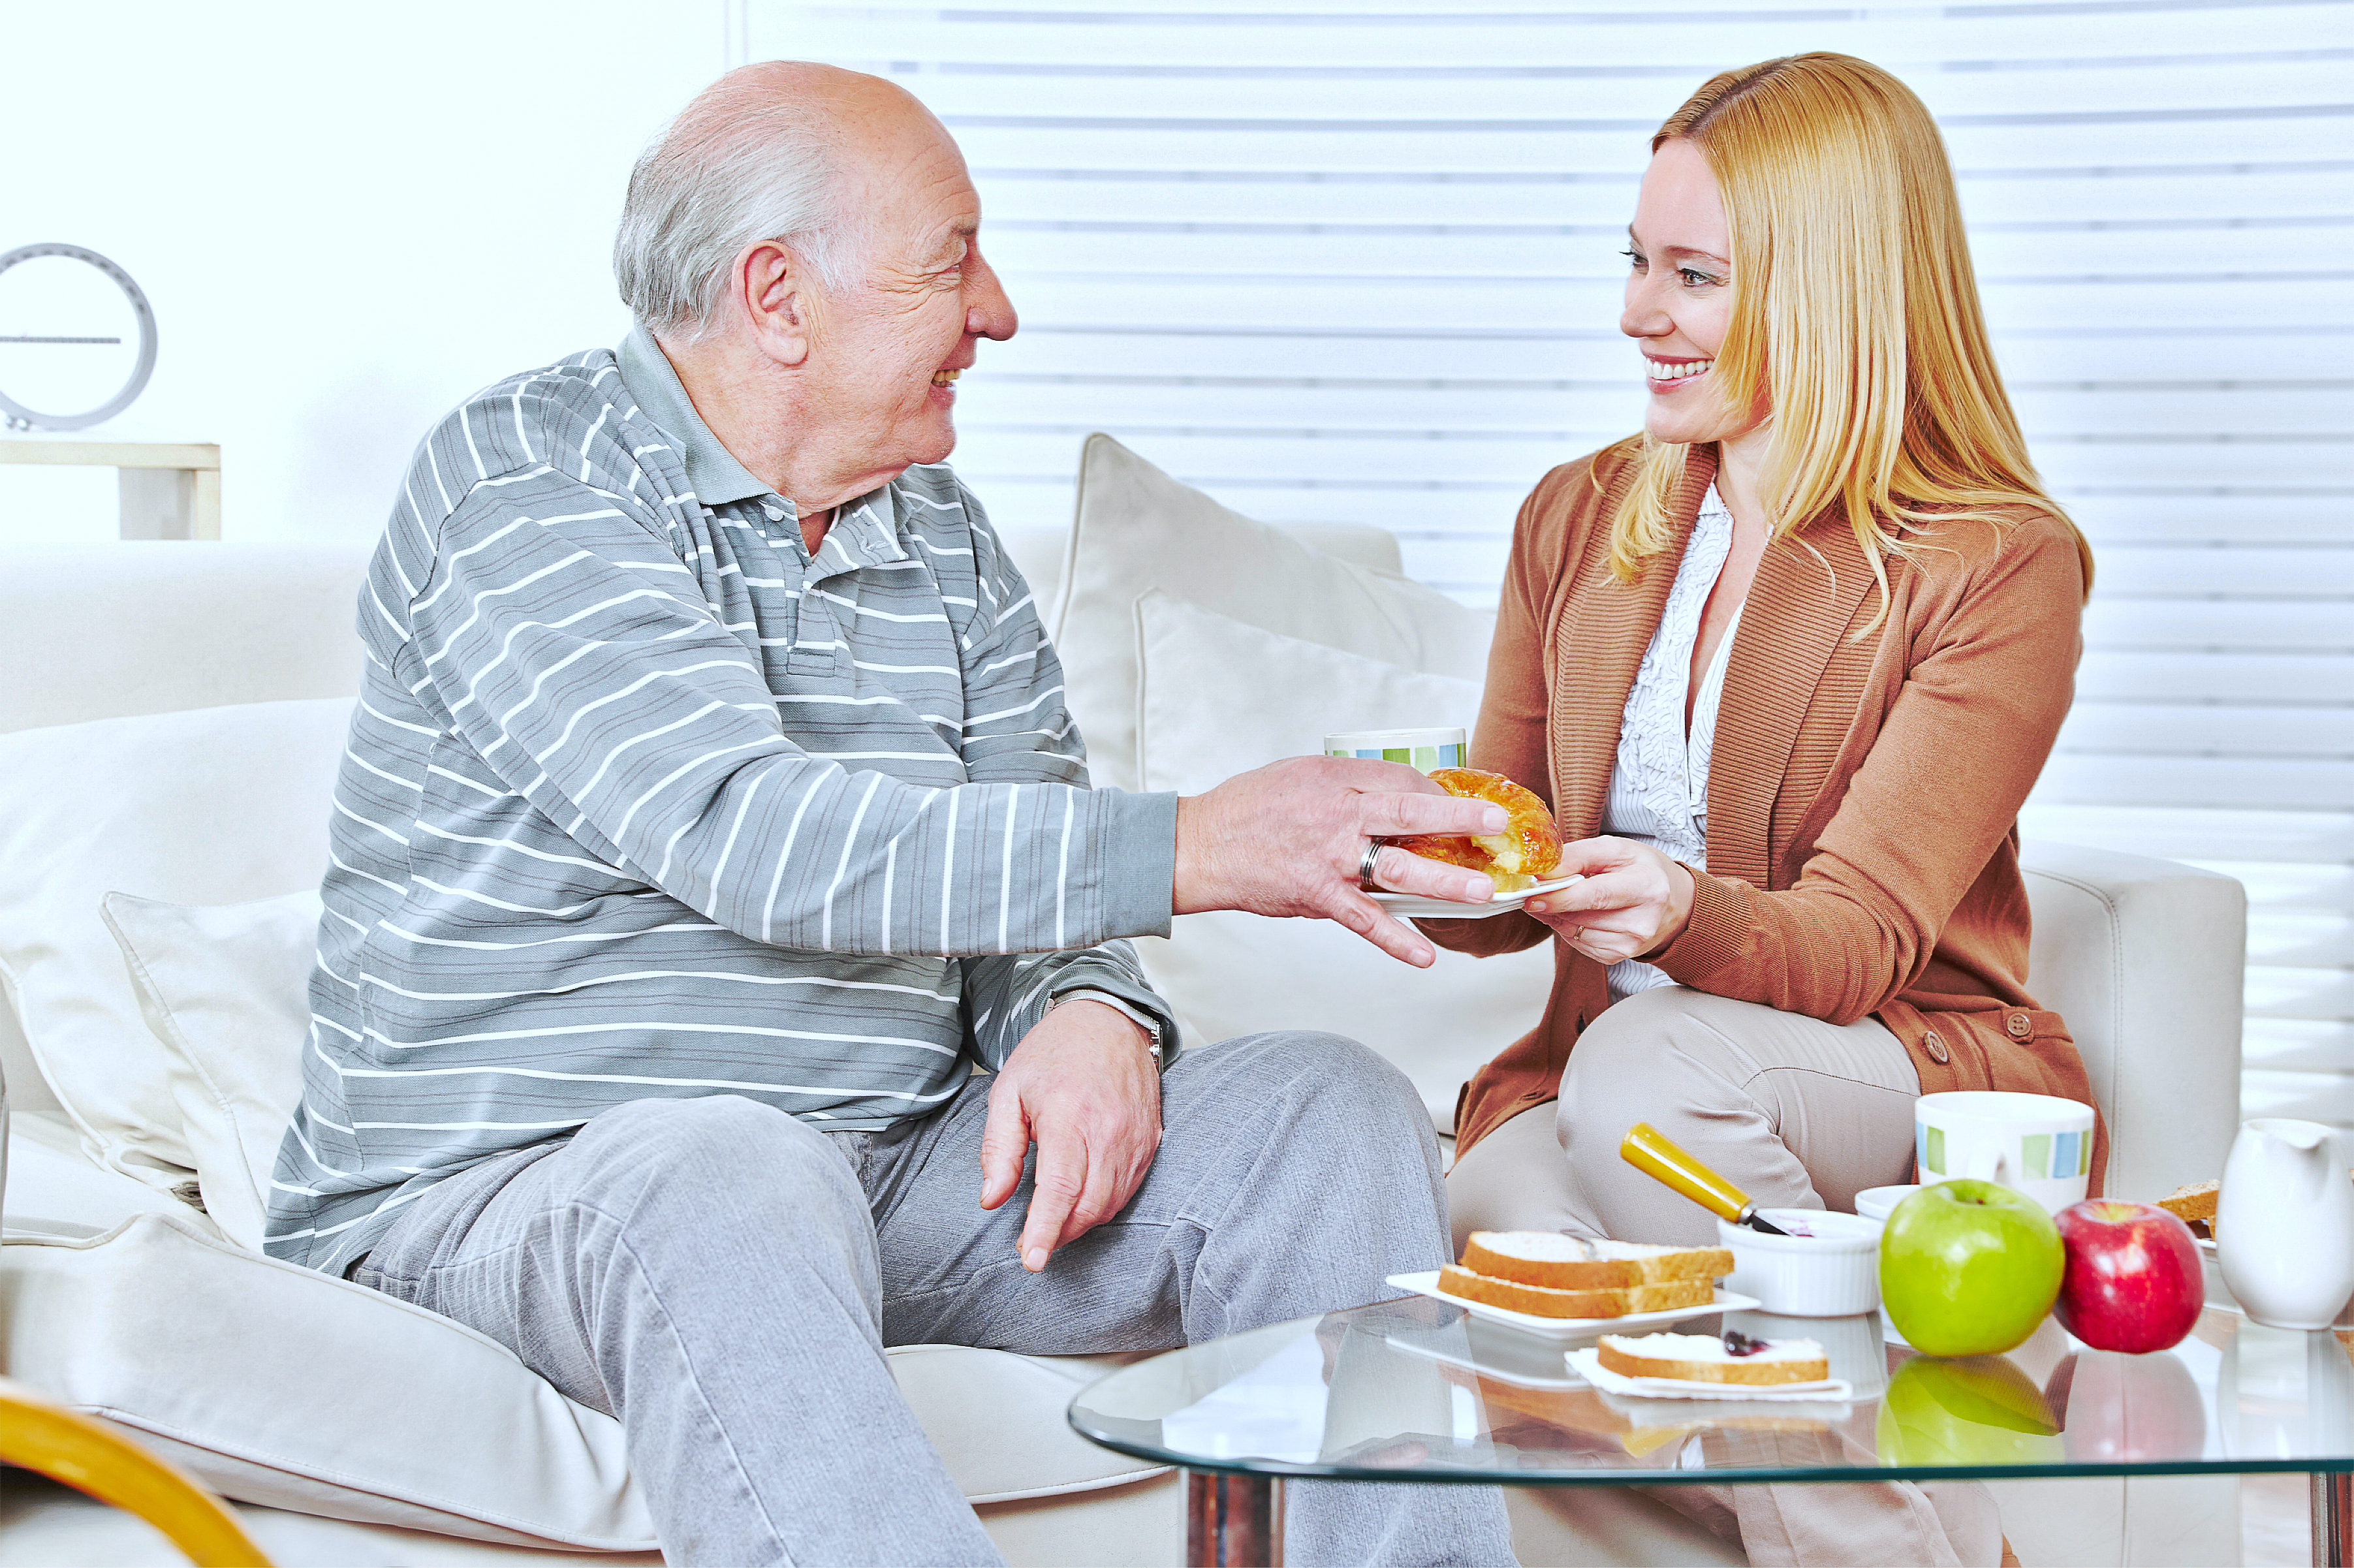 A caregiver giving some food to the patient